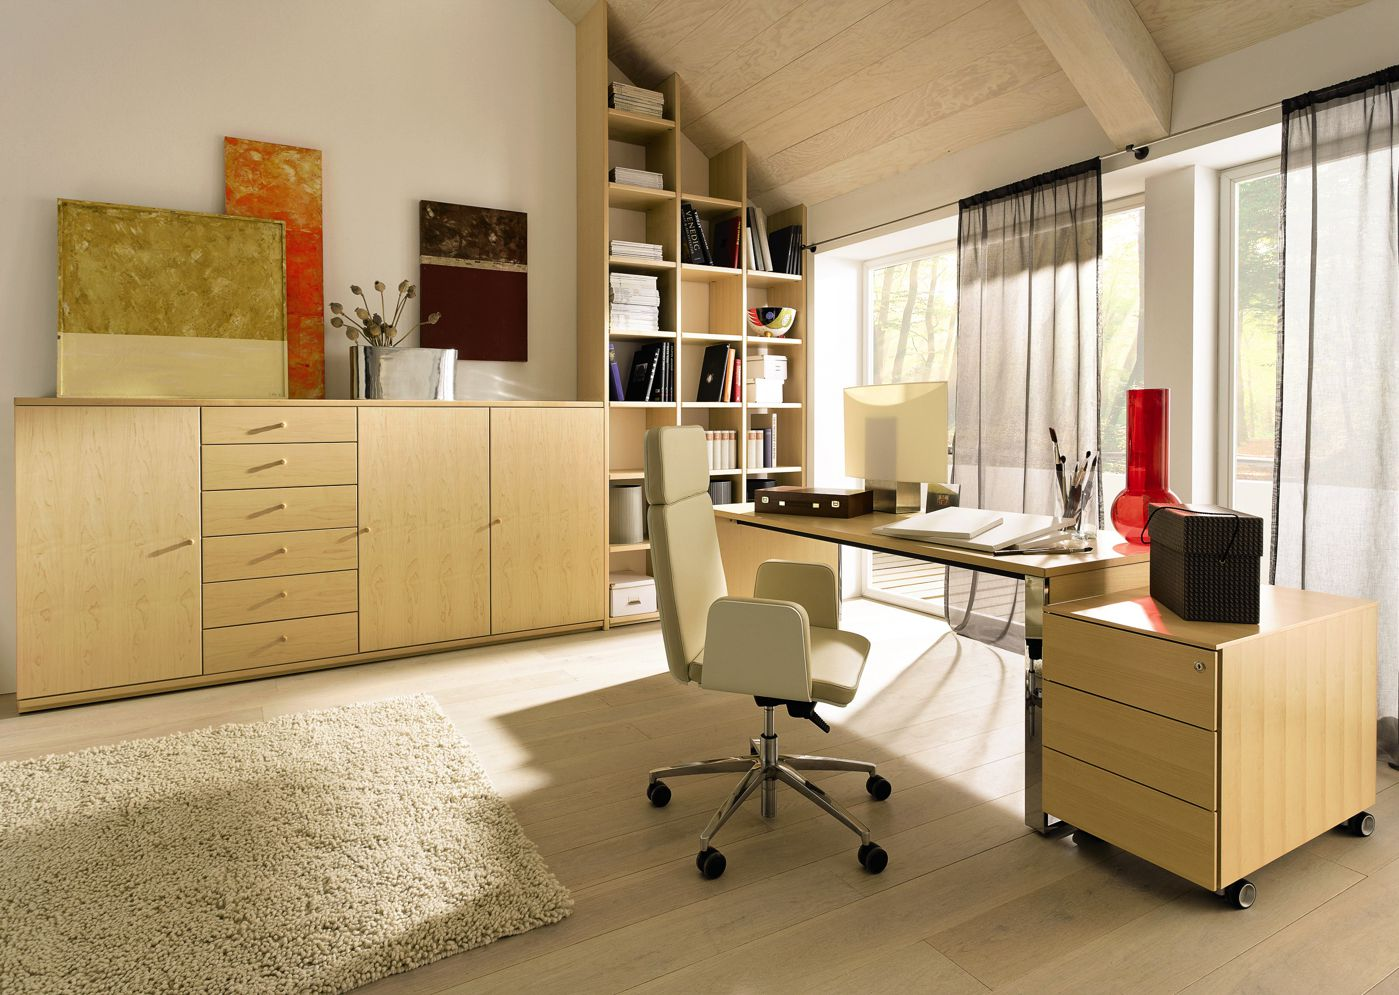 small office design inspiration gallery cool office colors 8 really really cool offices you chic home office design 1238